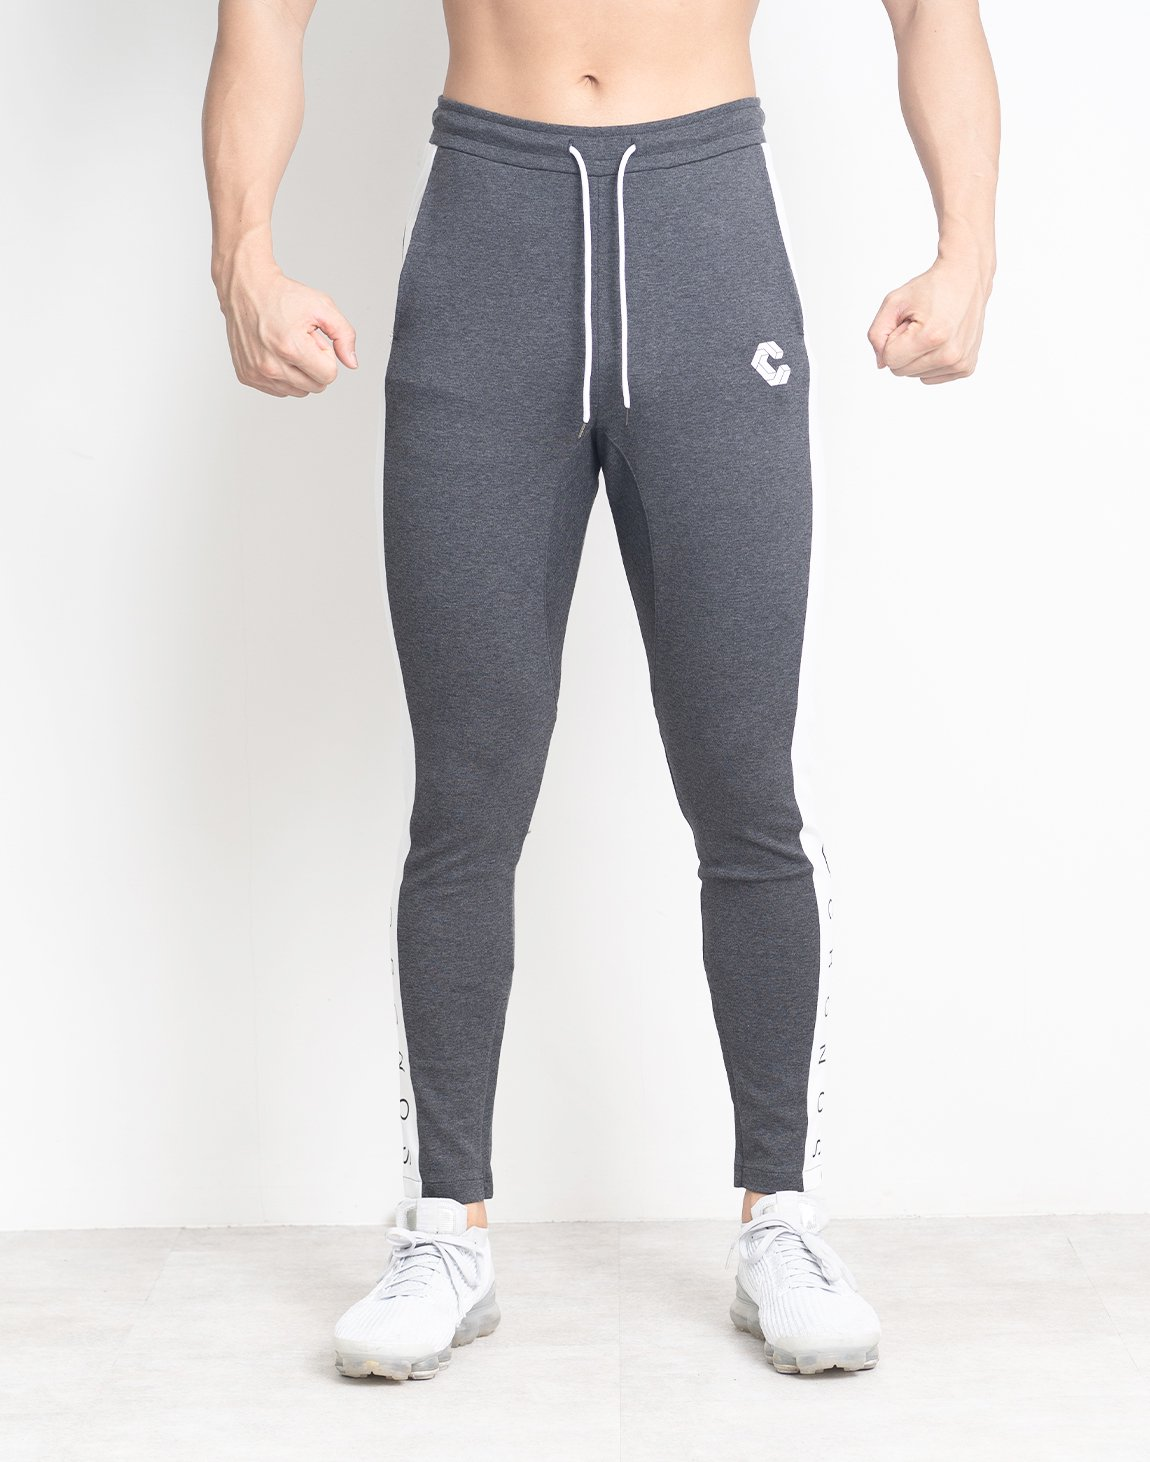 <img class='new_mark_img1' src='https://img.shop-pro.jp/img/new/icons55.gif' style='border:none;display:inline;margin:0px;padding:0px;width:auto;' />CRONOS SIDE FONT LOGO PANTS【C.GRAY】